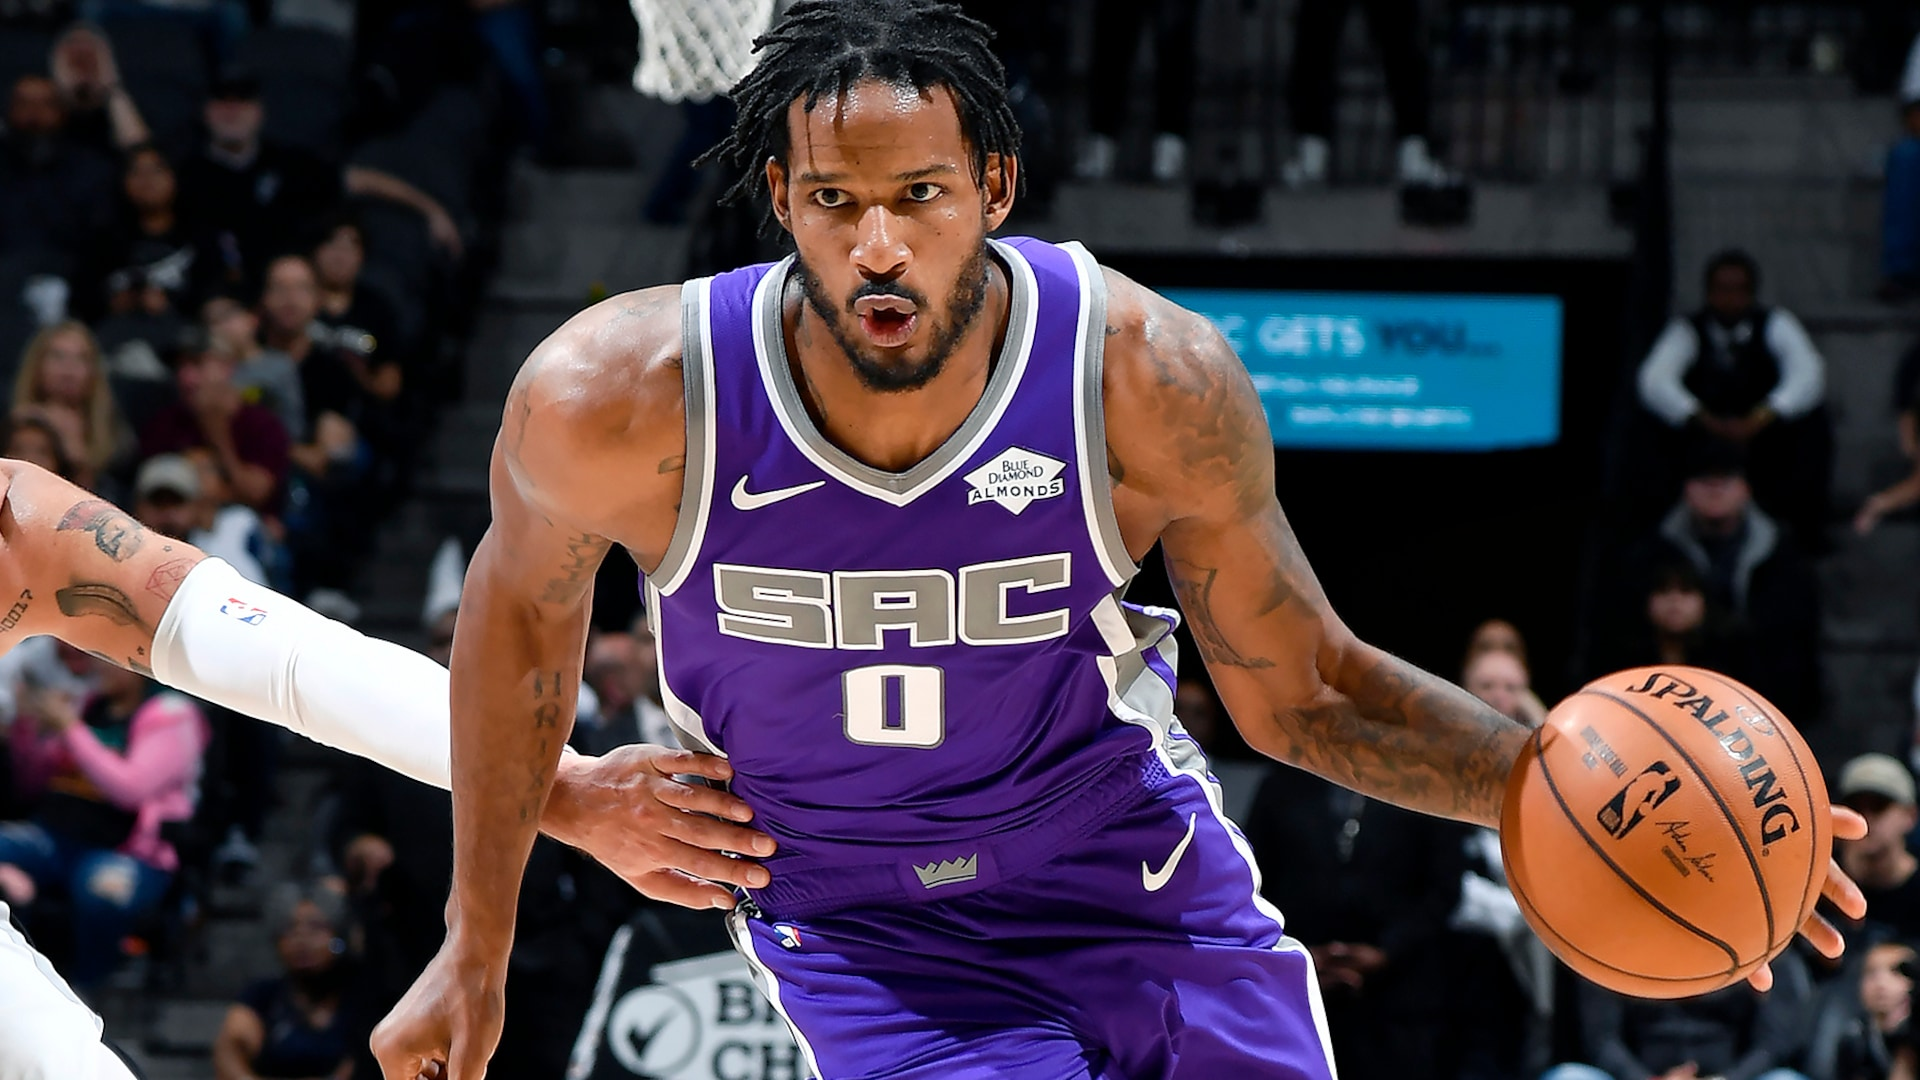 Kings trade Ariza, Gabriel, Swanigan to Blazers for Bazemore, Tolliver, Draft picks